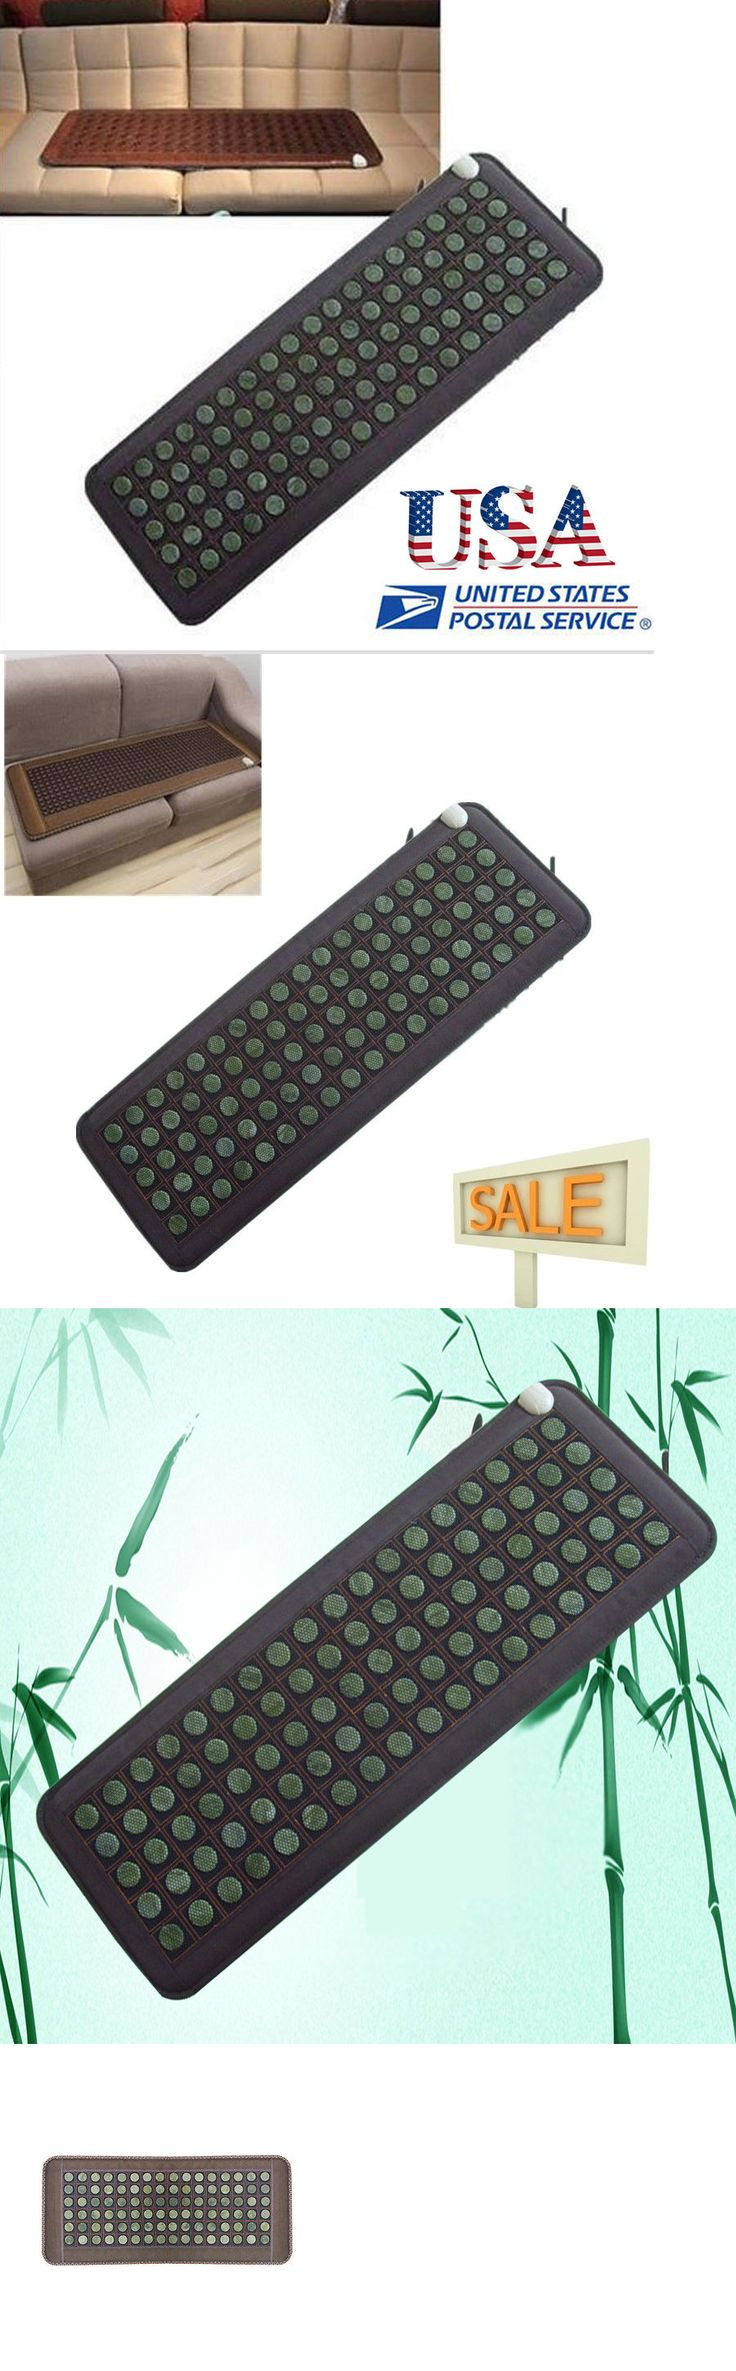 Massage Stones and Rocks: Natural Jade Tourmaline Stones Negative Ions Infrared Heating Energy Mat Usa -> BUY IT NOW ONLY: $144 on eBay!